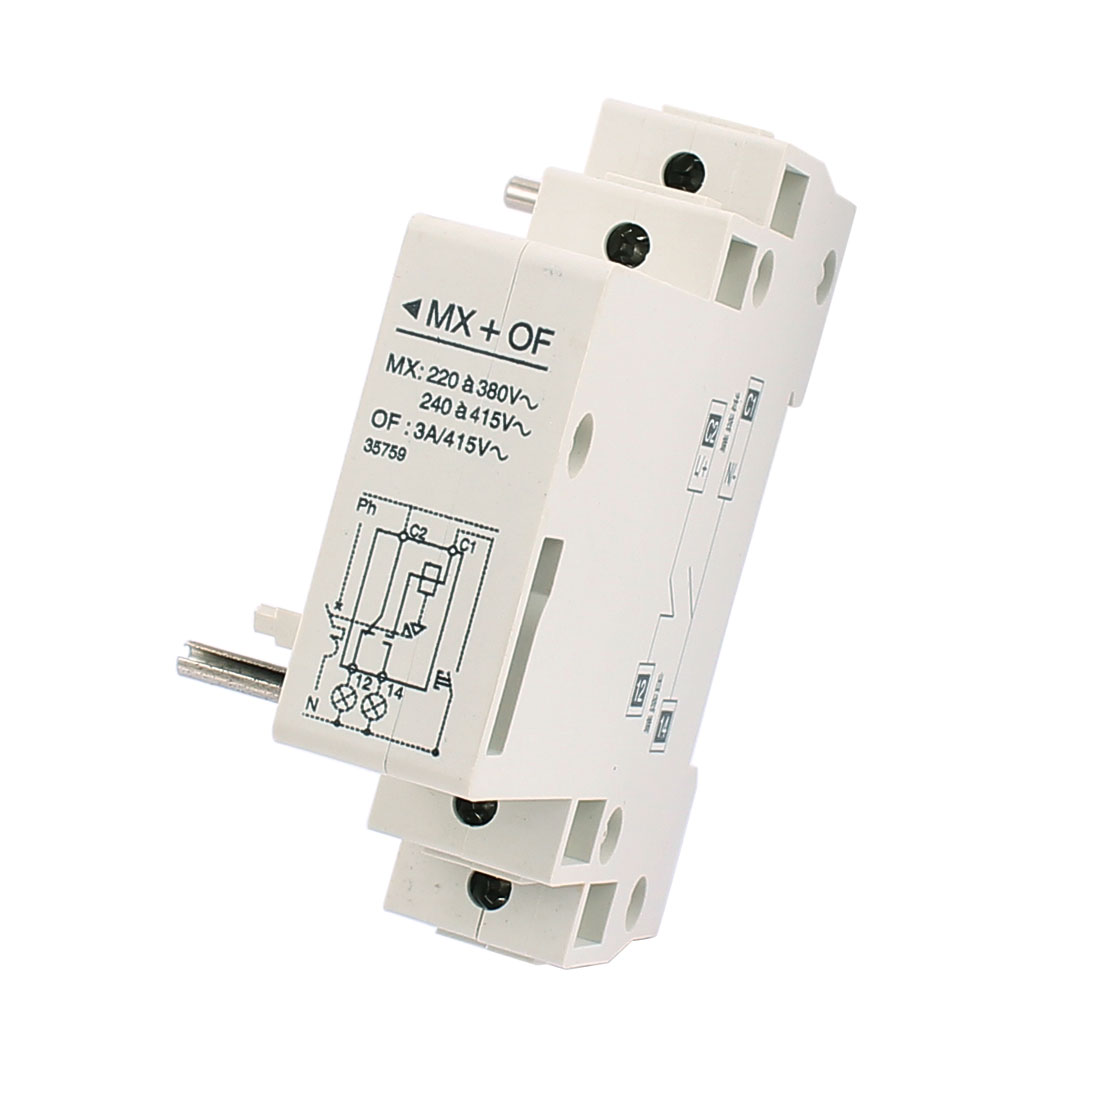 220V MX+OF Leakage Protection Shunt Release Auxiliary Switch for Circuit Breaker